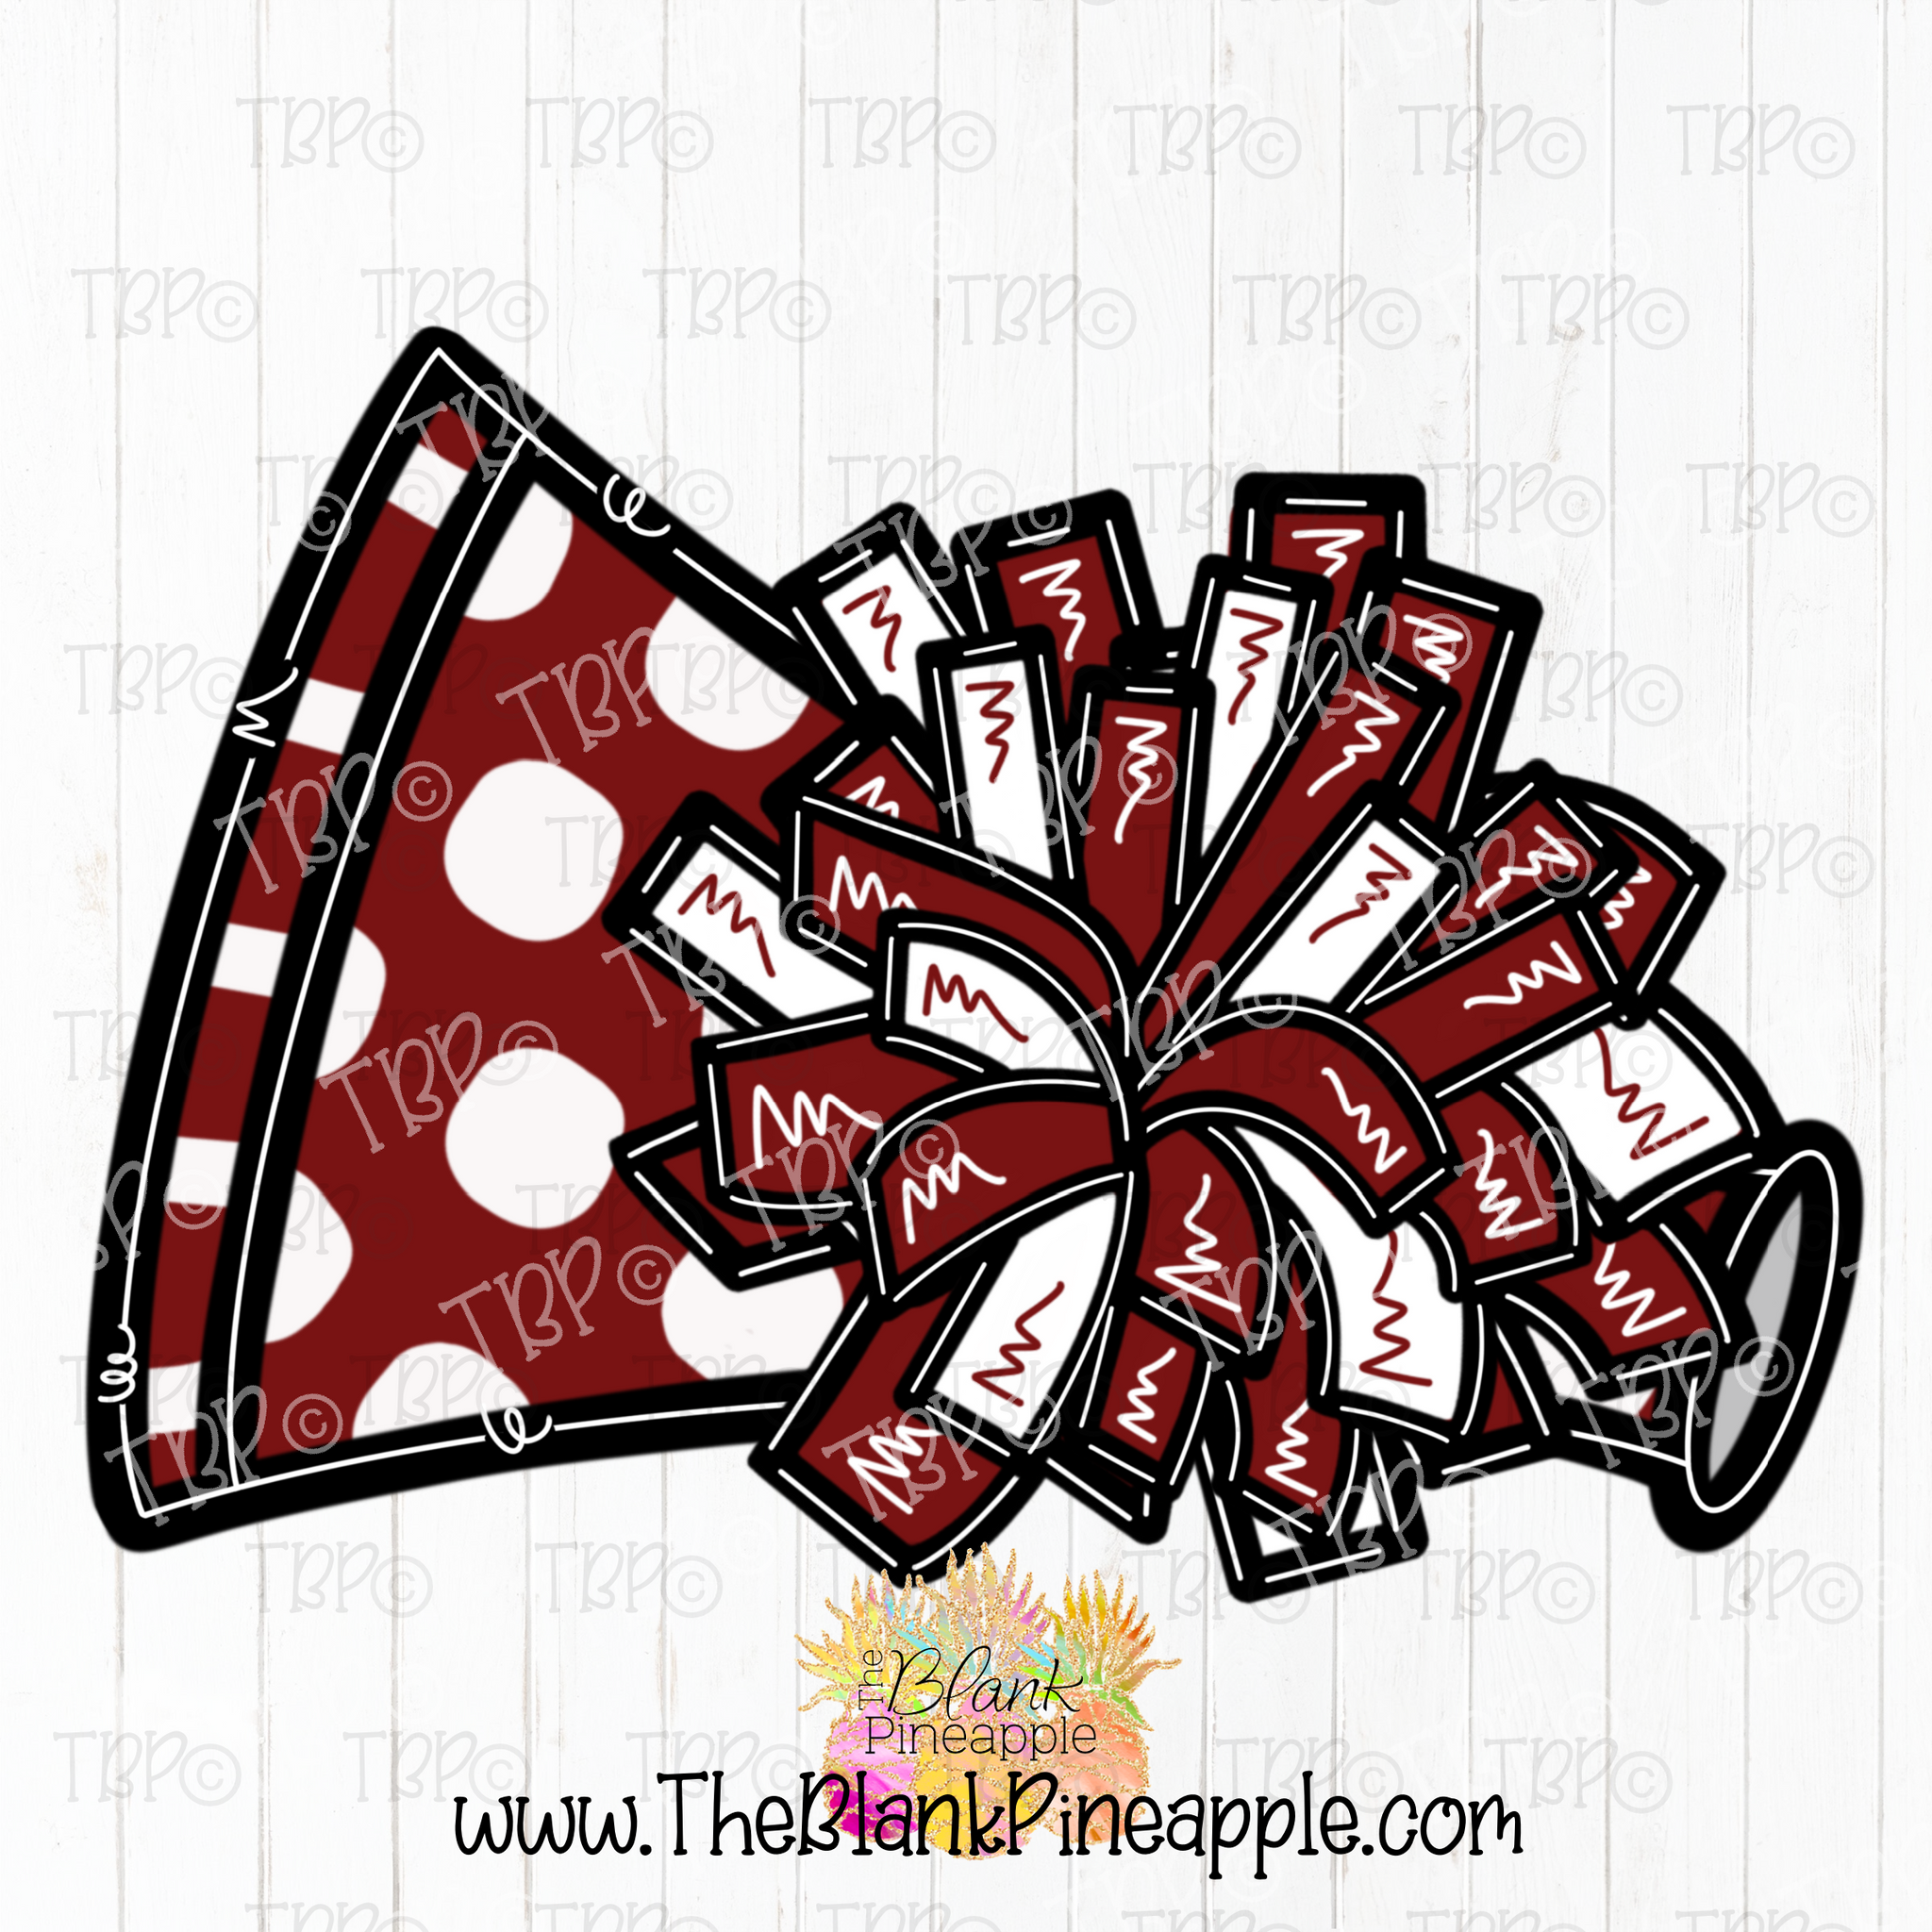 Cheerleading Pom Pom and Megaphone Sublimation Design PNG